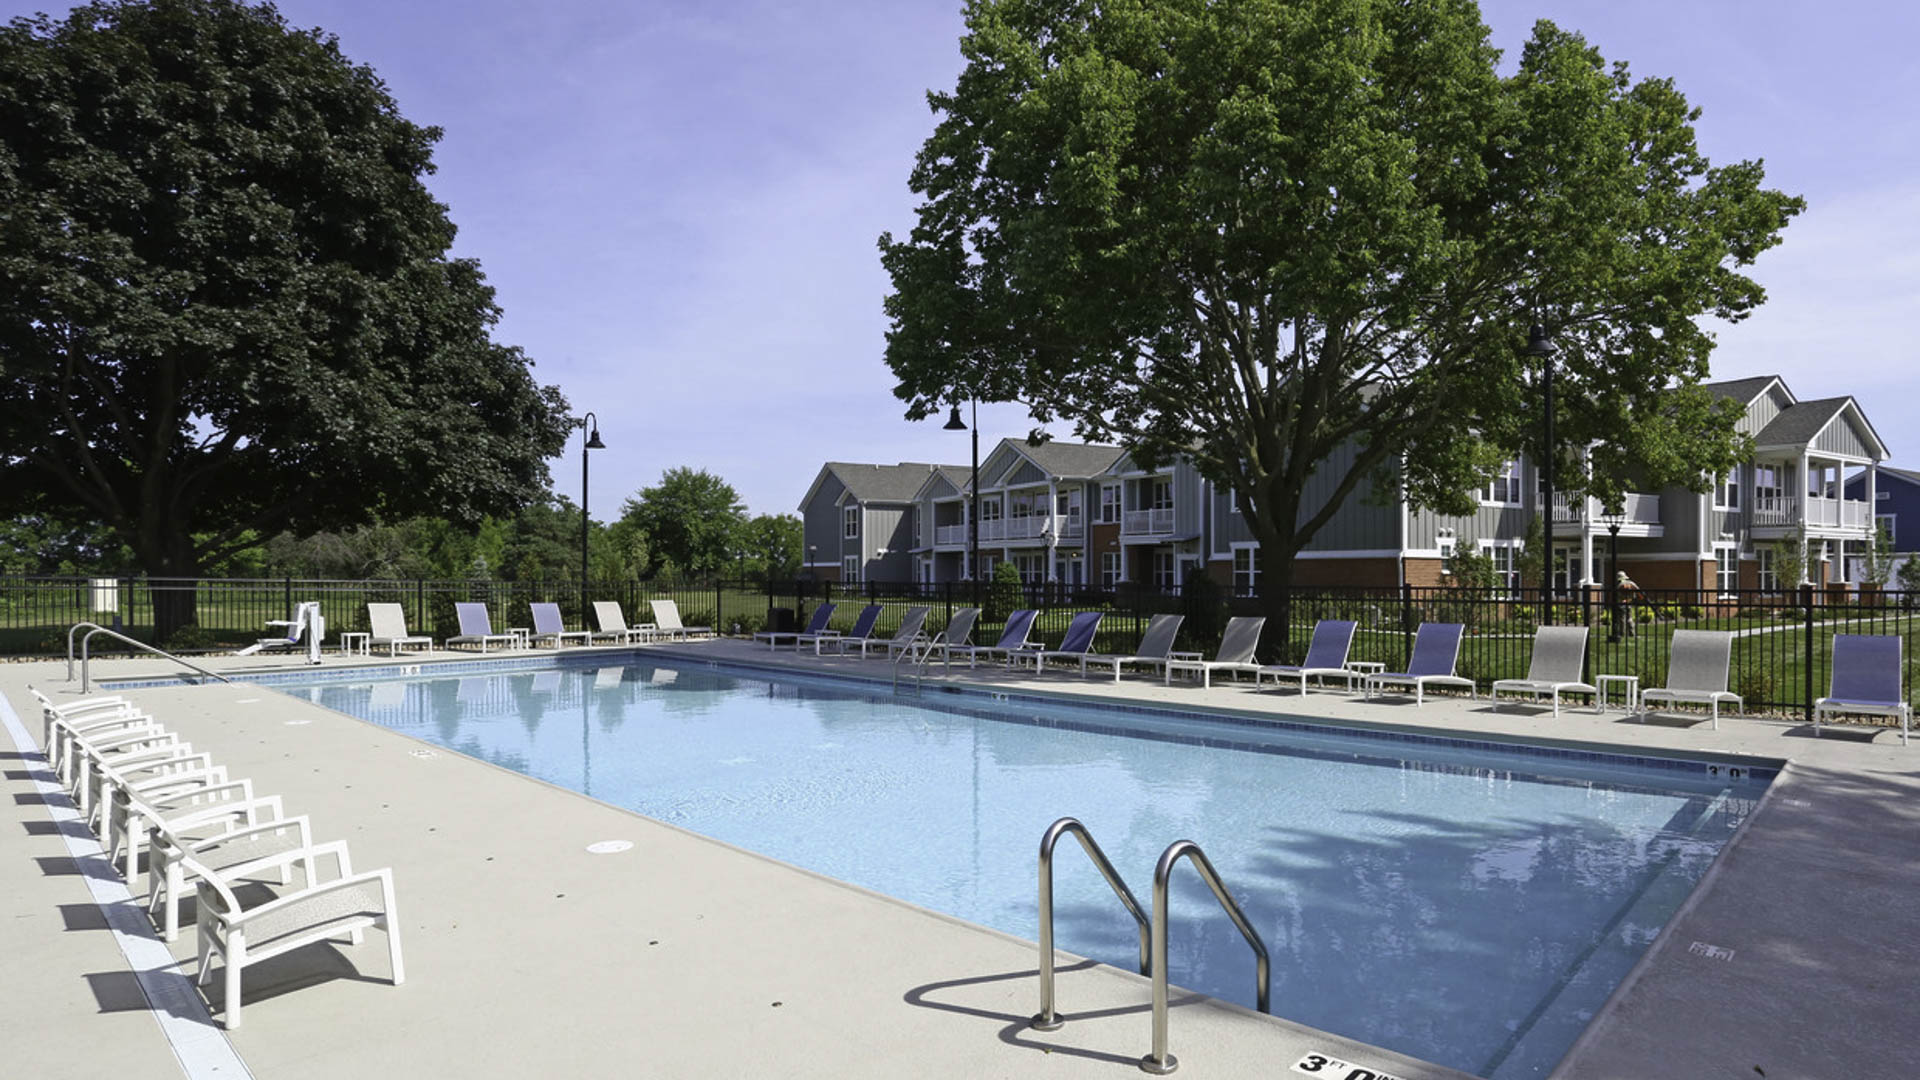 Springs at Canterfield pool and apartment exterior  in West Dundee, IL